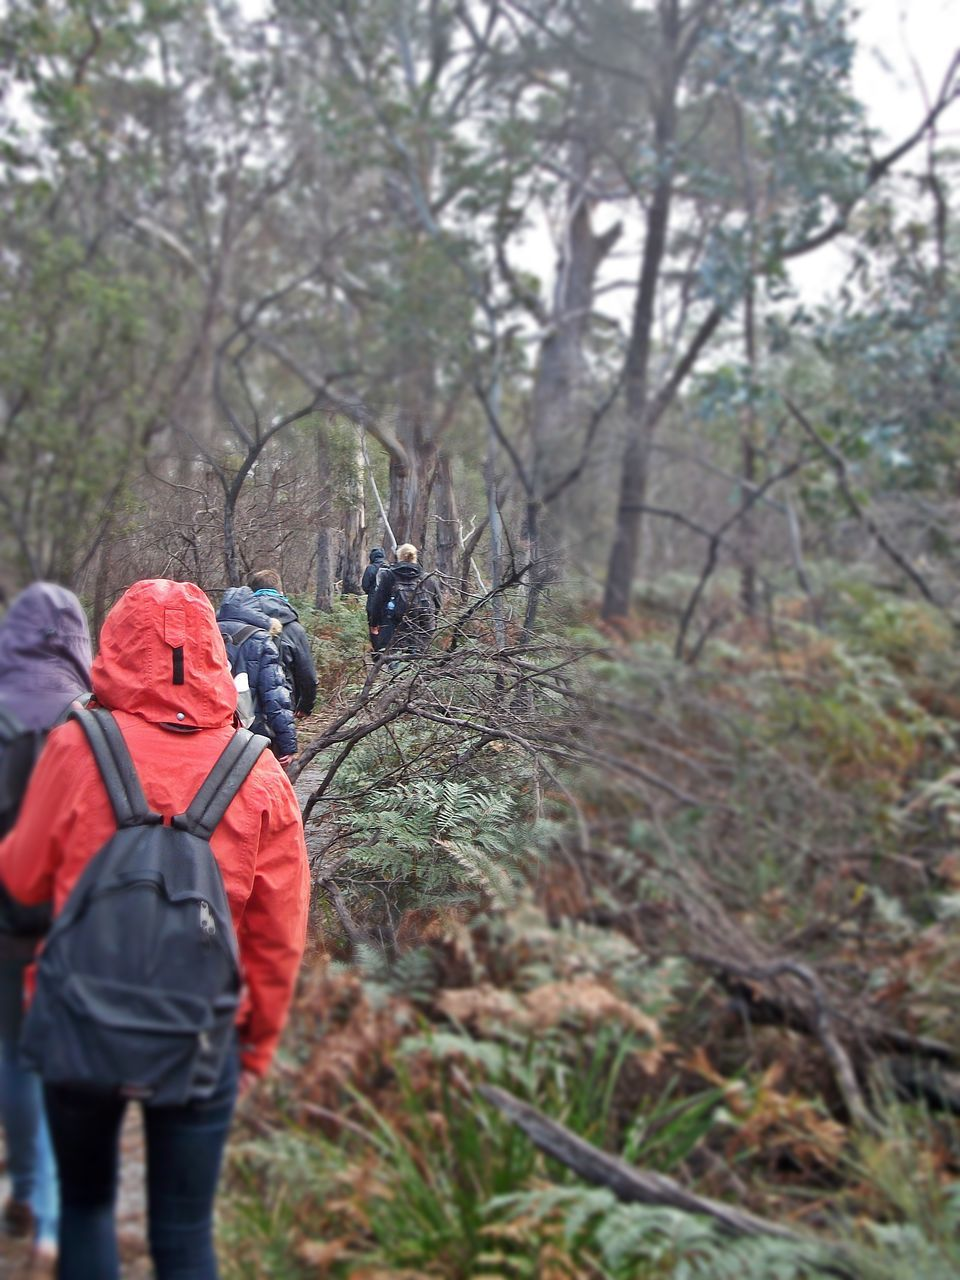 rear view, real people, walking, backpack, tree, nature, leisure activity, men, forest, one person, hiking, beauty in nature, lifestyles, day, outdoors, branch, mammal, people